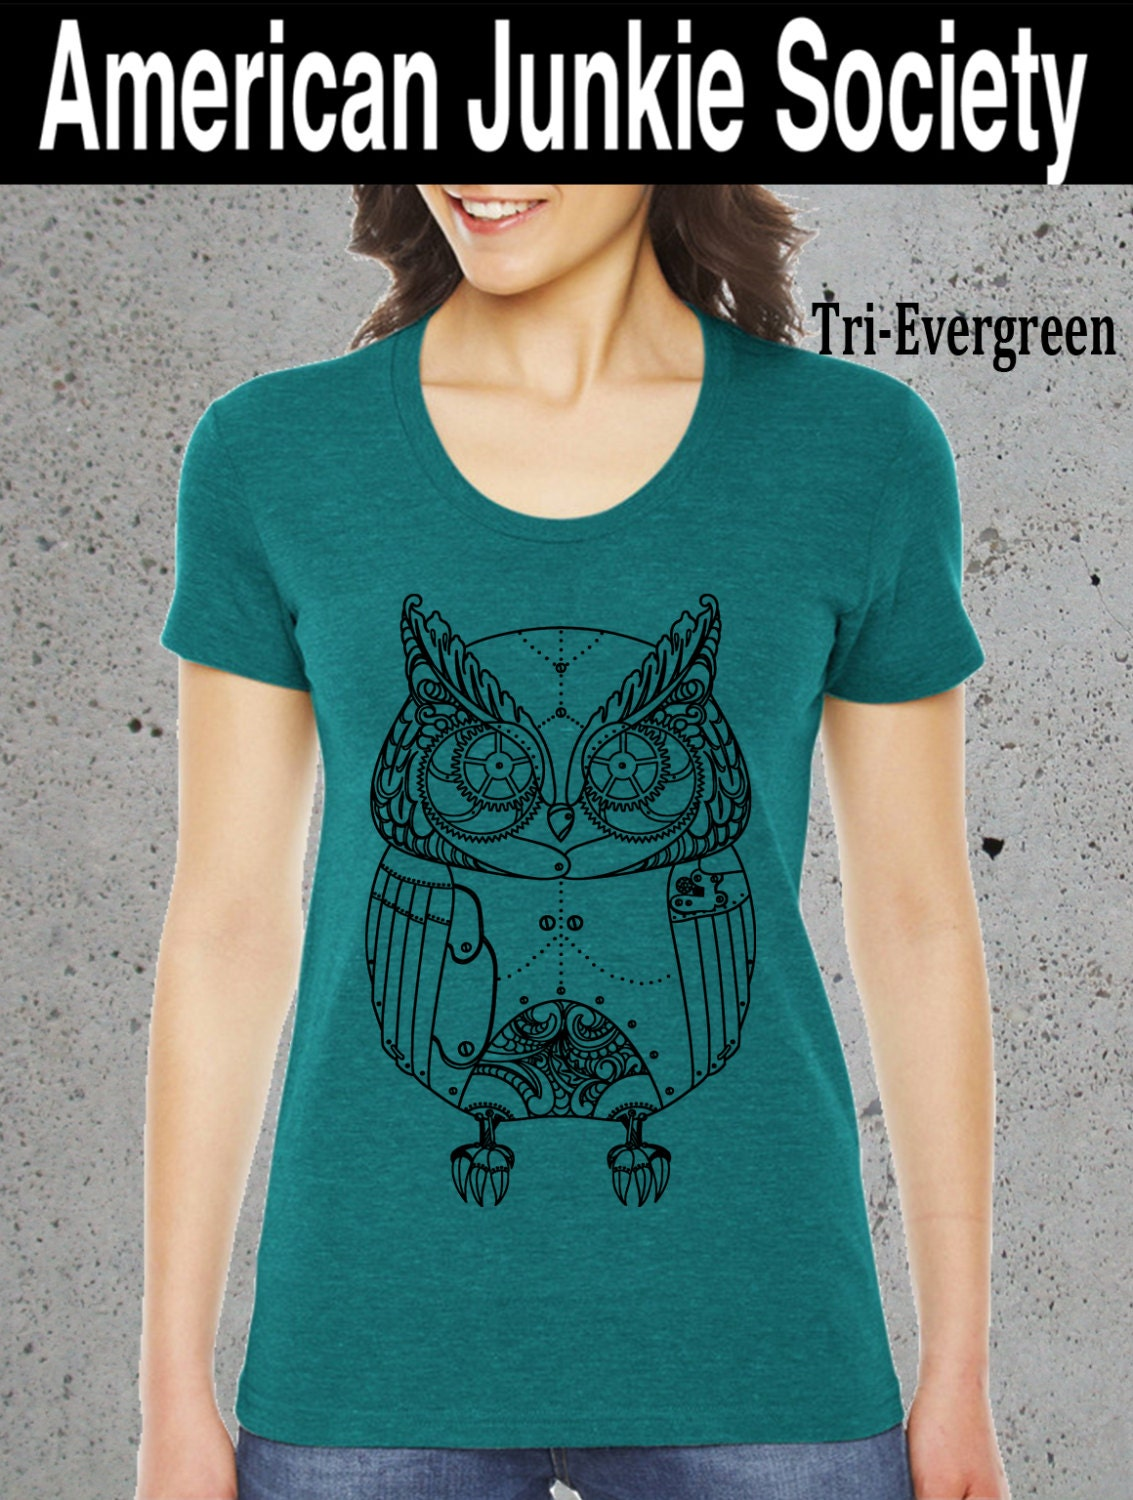 Womens robotic owl shirtbest selling by americanjunkiesoc for Selling shirts on etsy